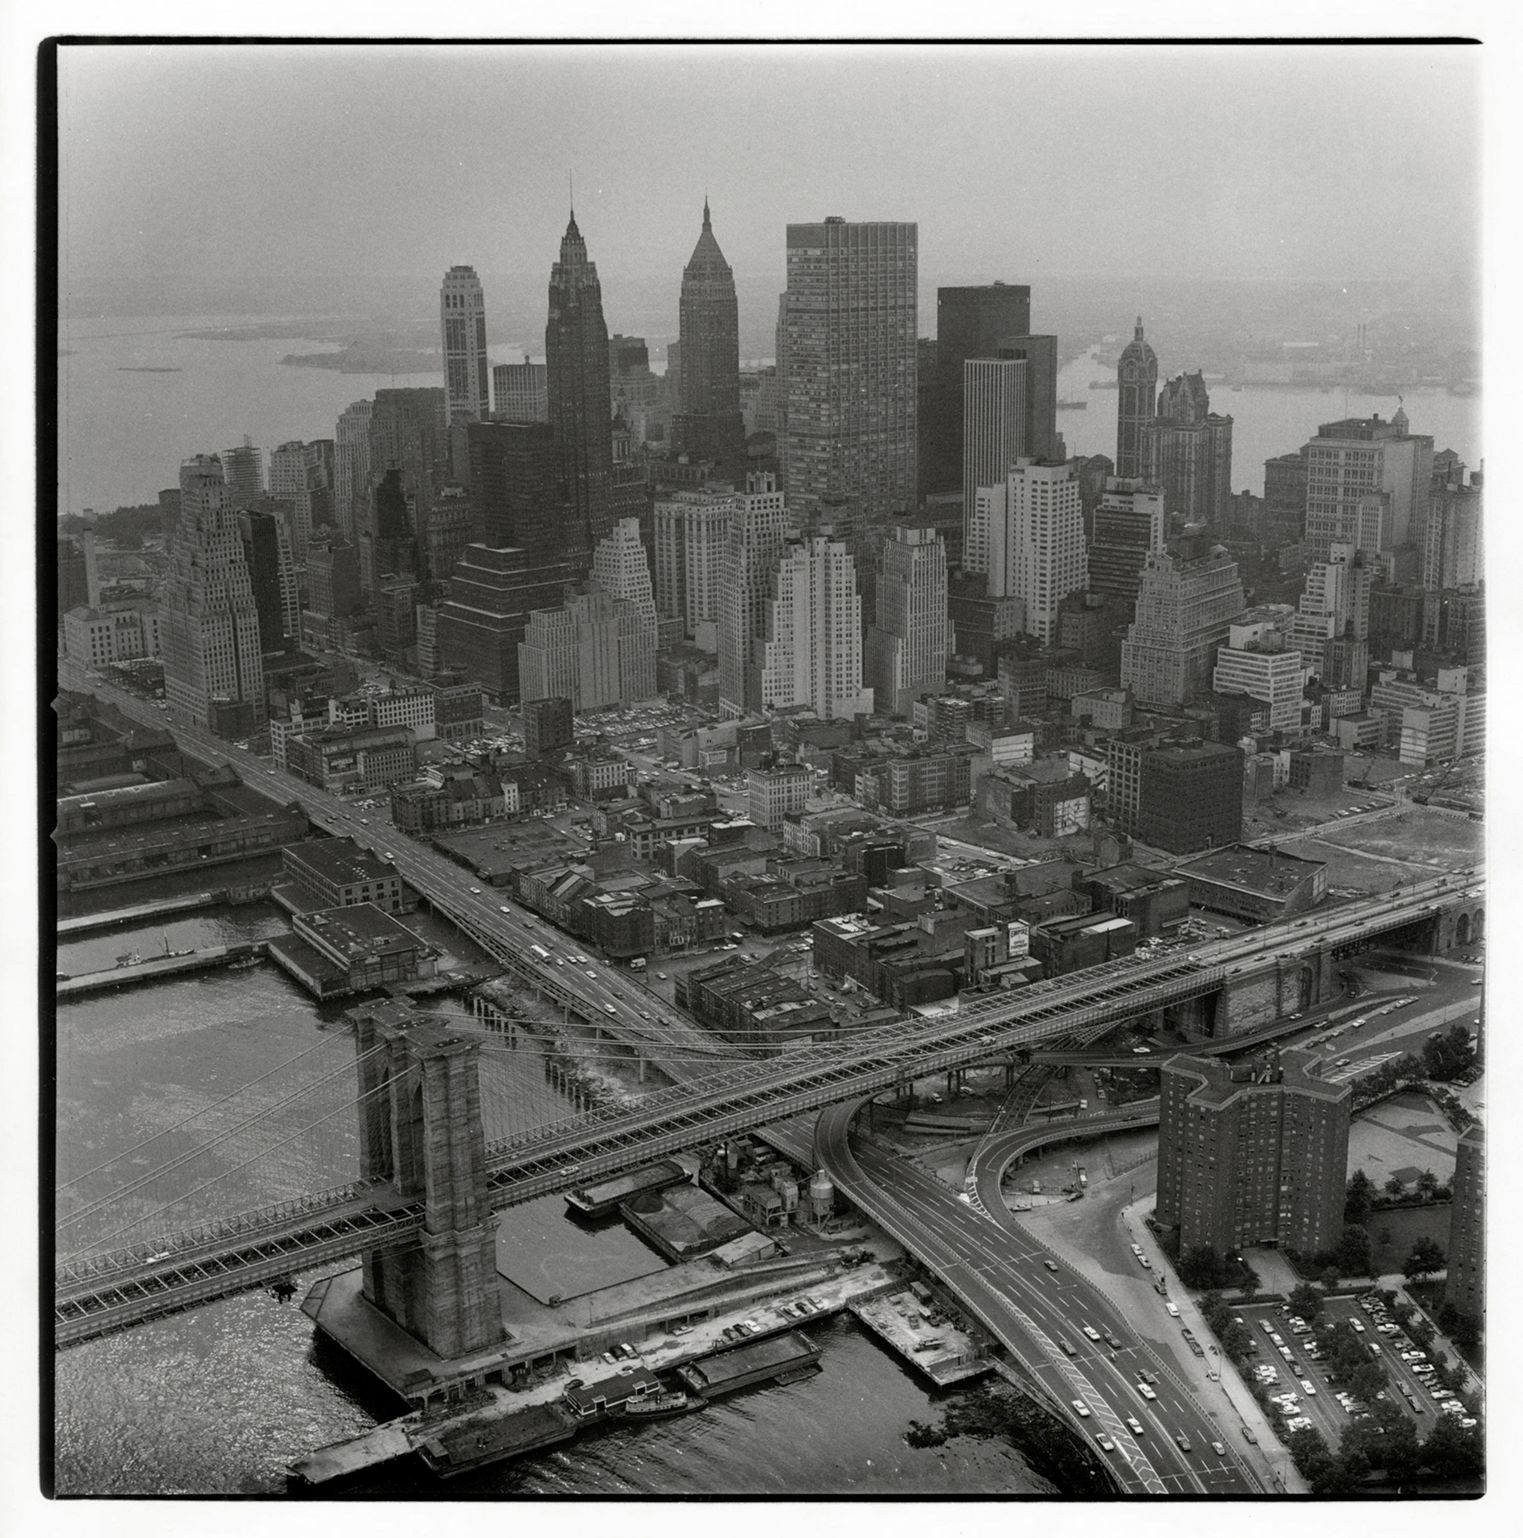 Aerial View of Manhattan (variant), from The Destruction of Lower Manhattan, 1966